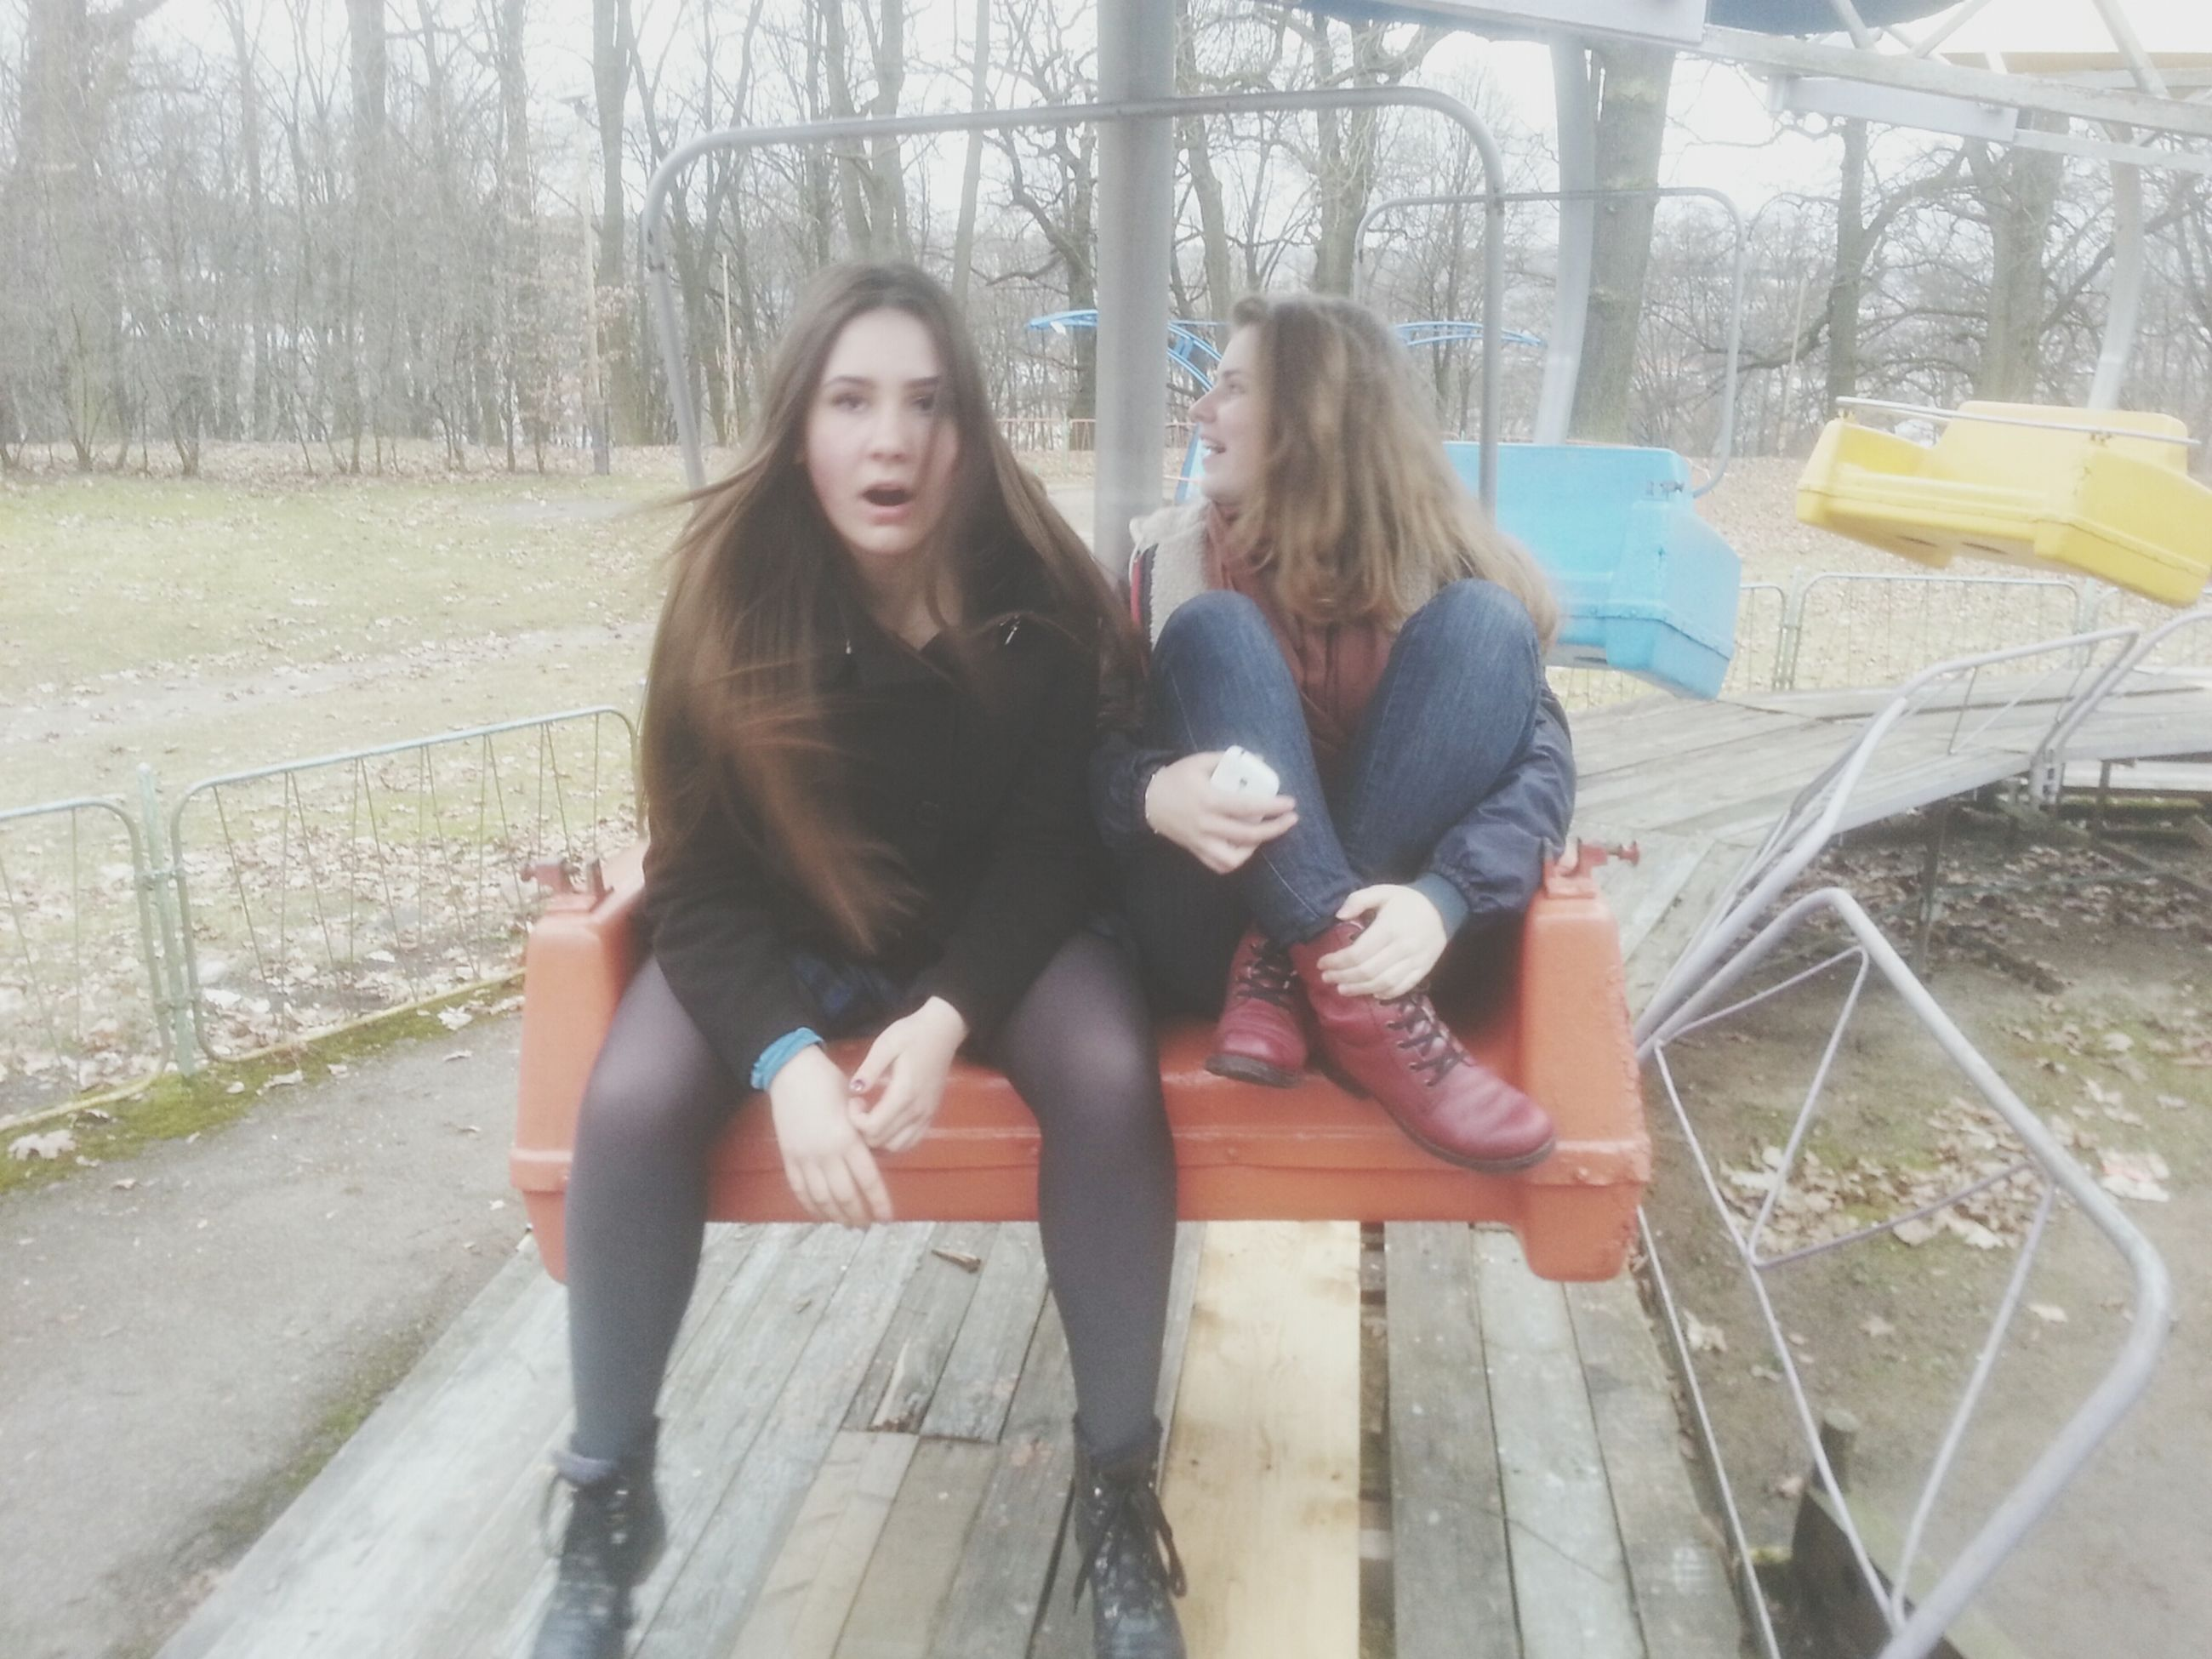 lifestyles, leisure activity, casual clothing, young adult, person, young women, full length, tree, sitting, looking at camera, long hair, front view, standing, portrait, park - man made space, smiling, togetherness